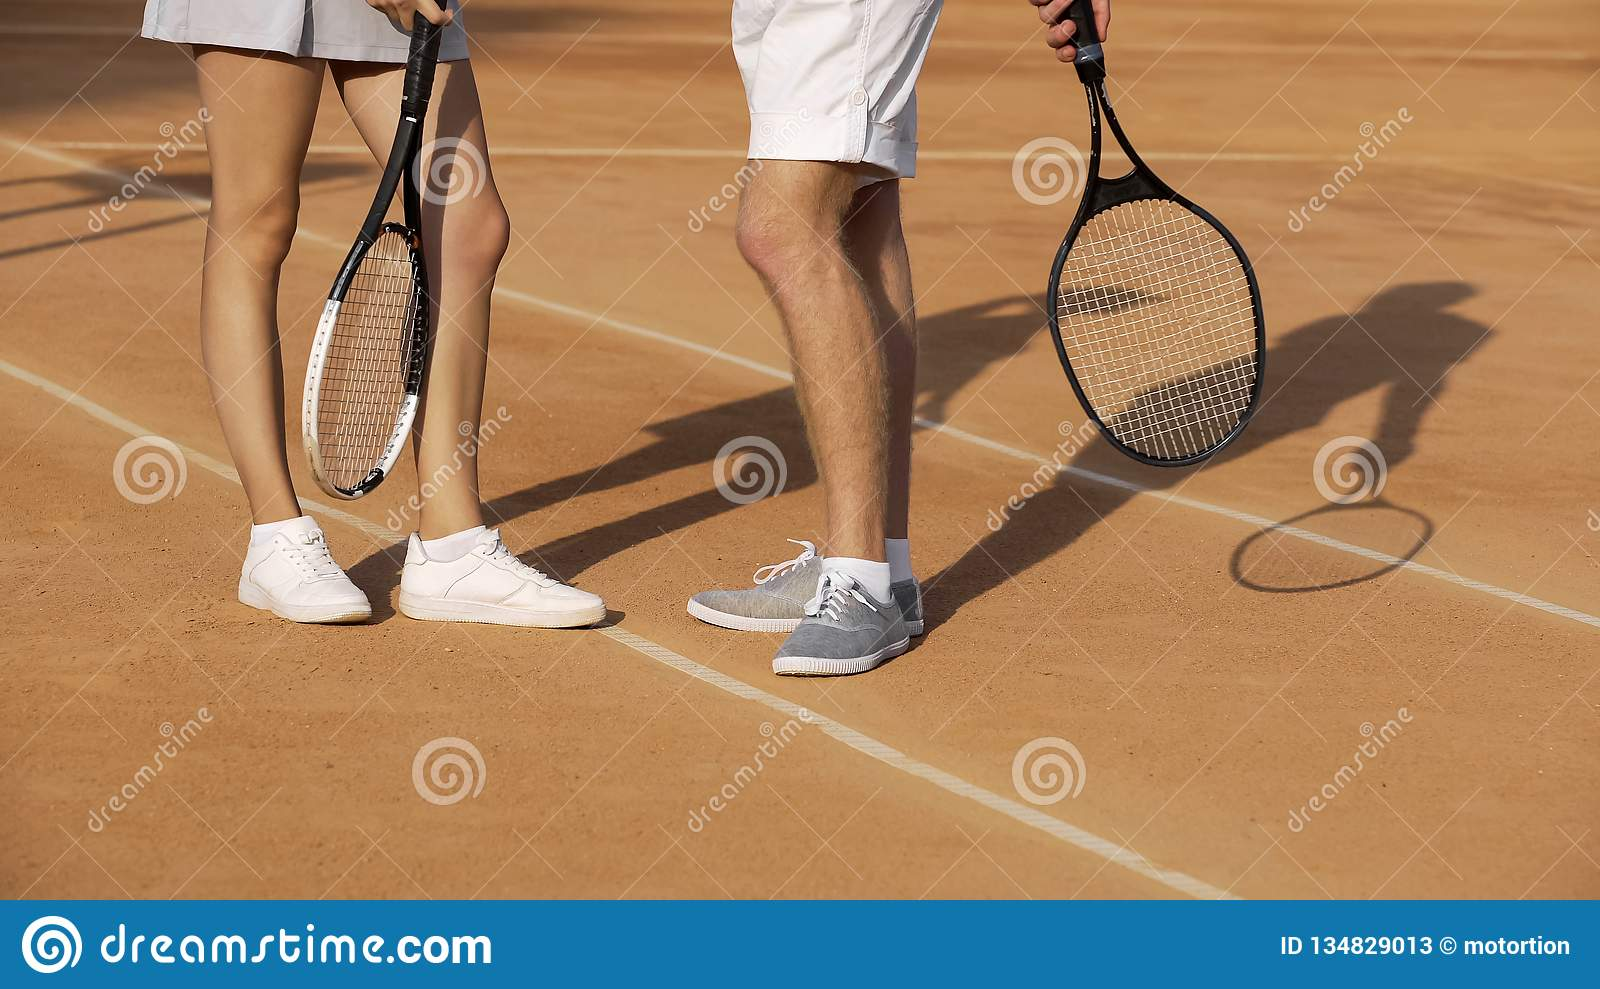 Man And Woman Standing On Court And Talking About Last Tennis Match Hobby Stock Image Image Of Competitive Leisure 134829013